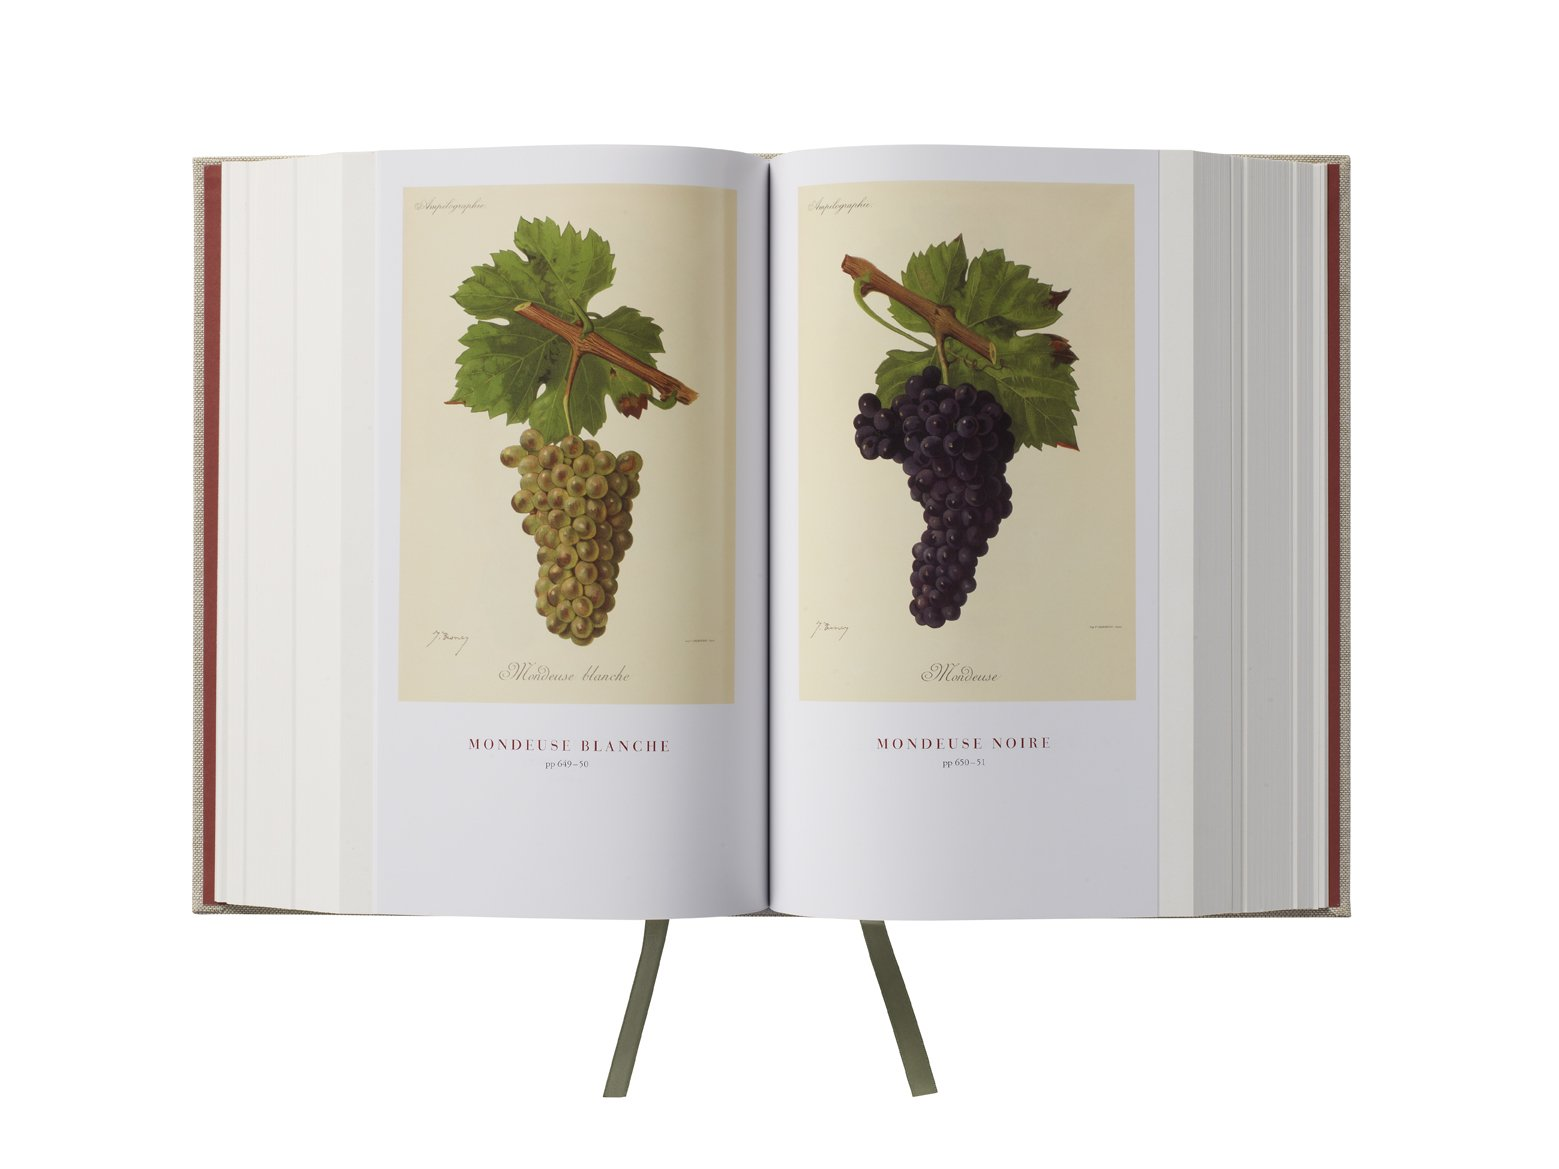 Wine Grapes: A complete guide to 1,368 vine varieties, including their origins and flavours: Amazon.es: Robinson, Jancis, Harding, Julia, Vouillamoz, José: Libros en idiomas extranjeros